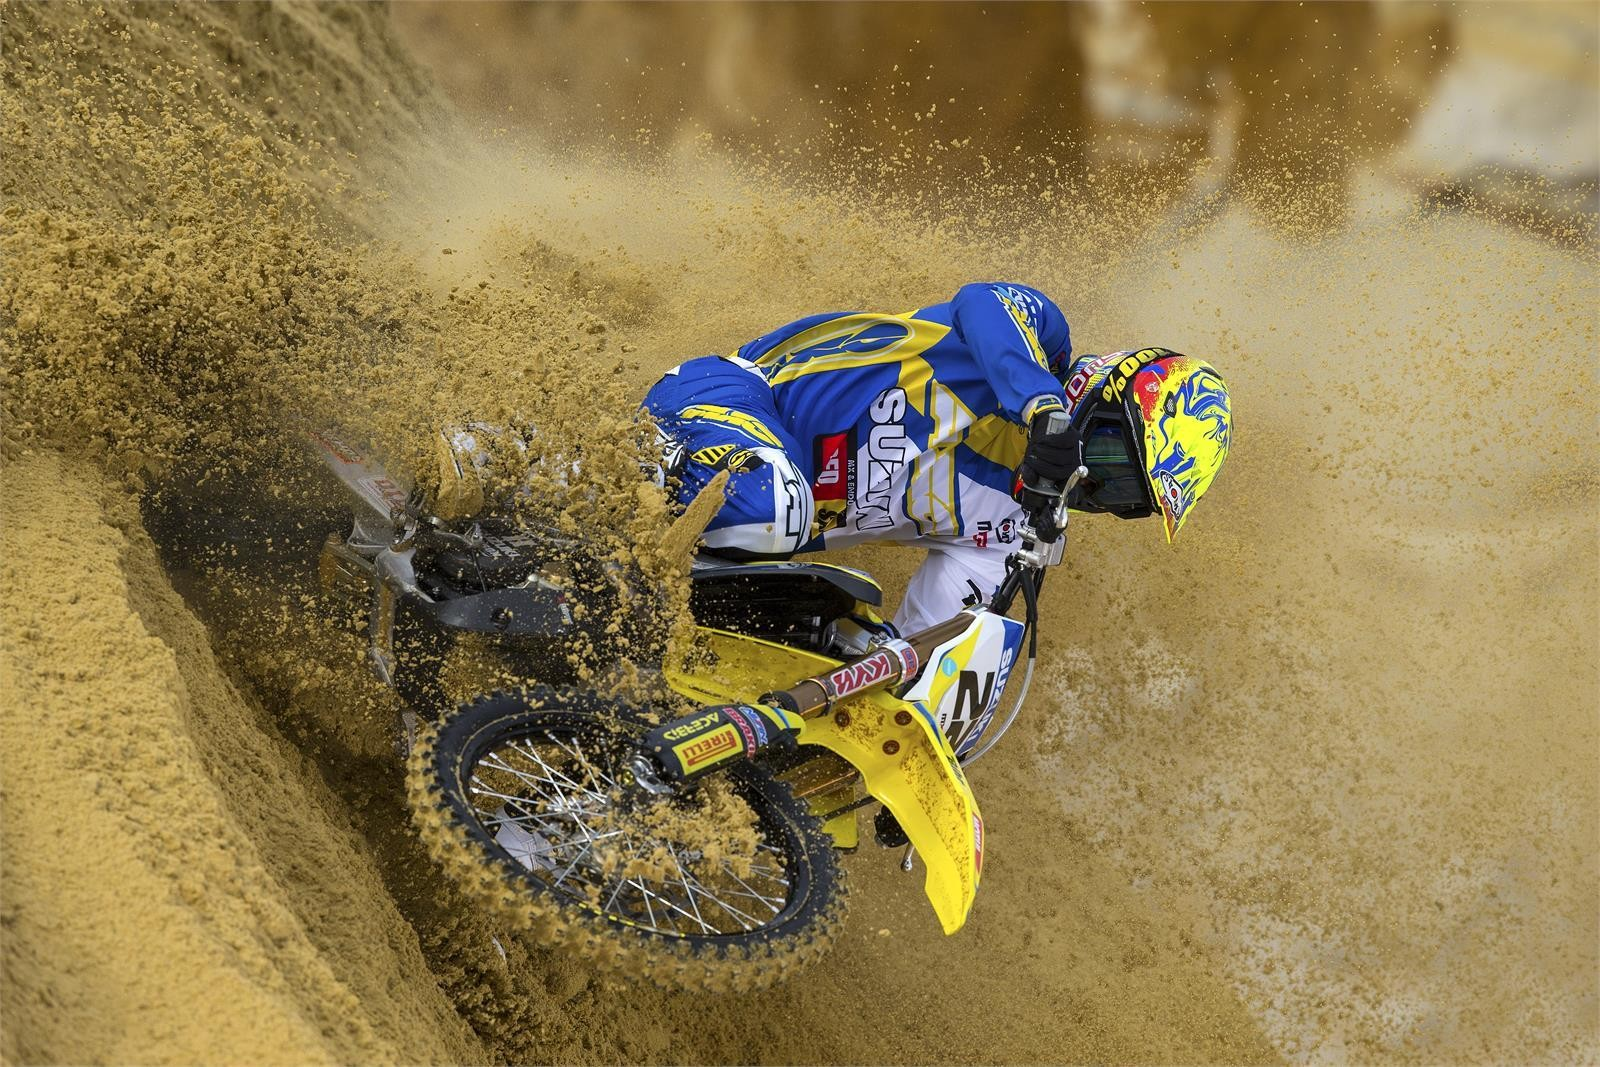 Kevin Strijbos - First Look: 2017 Suzuki World MXGP Team - Motocross Pictures - Vital MX